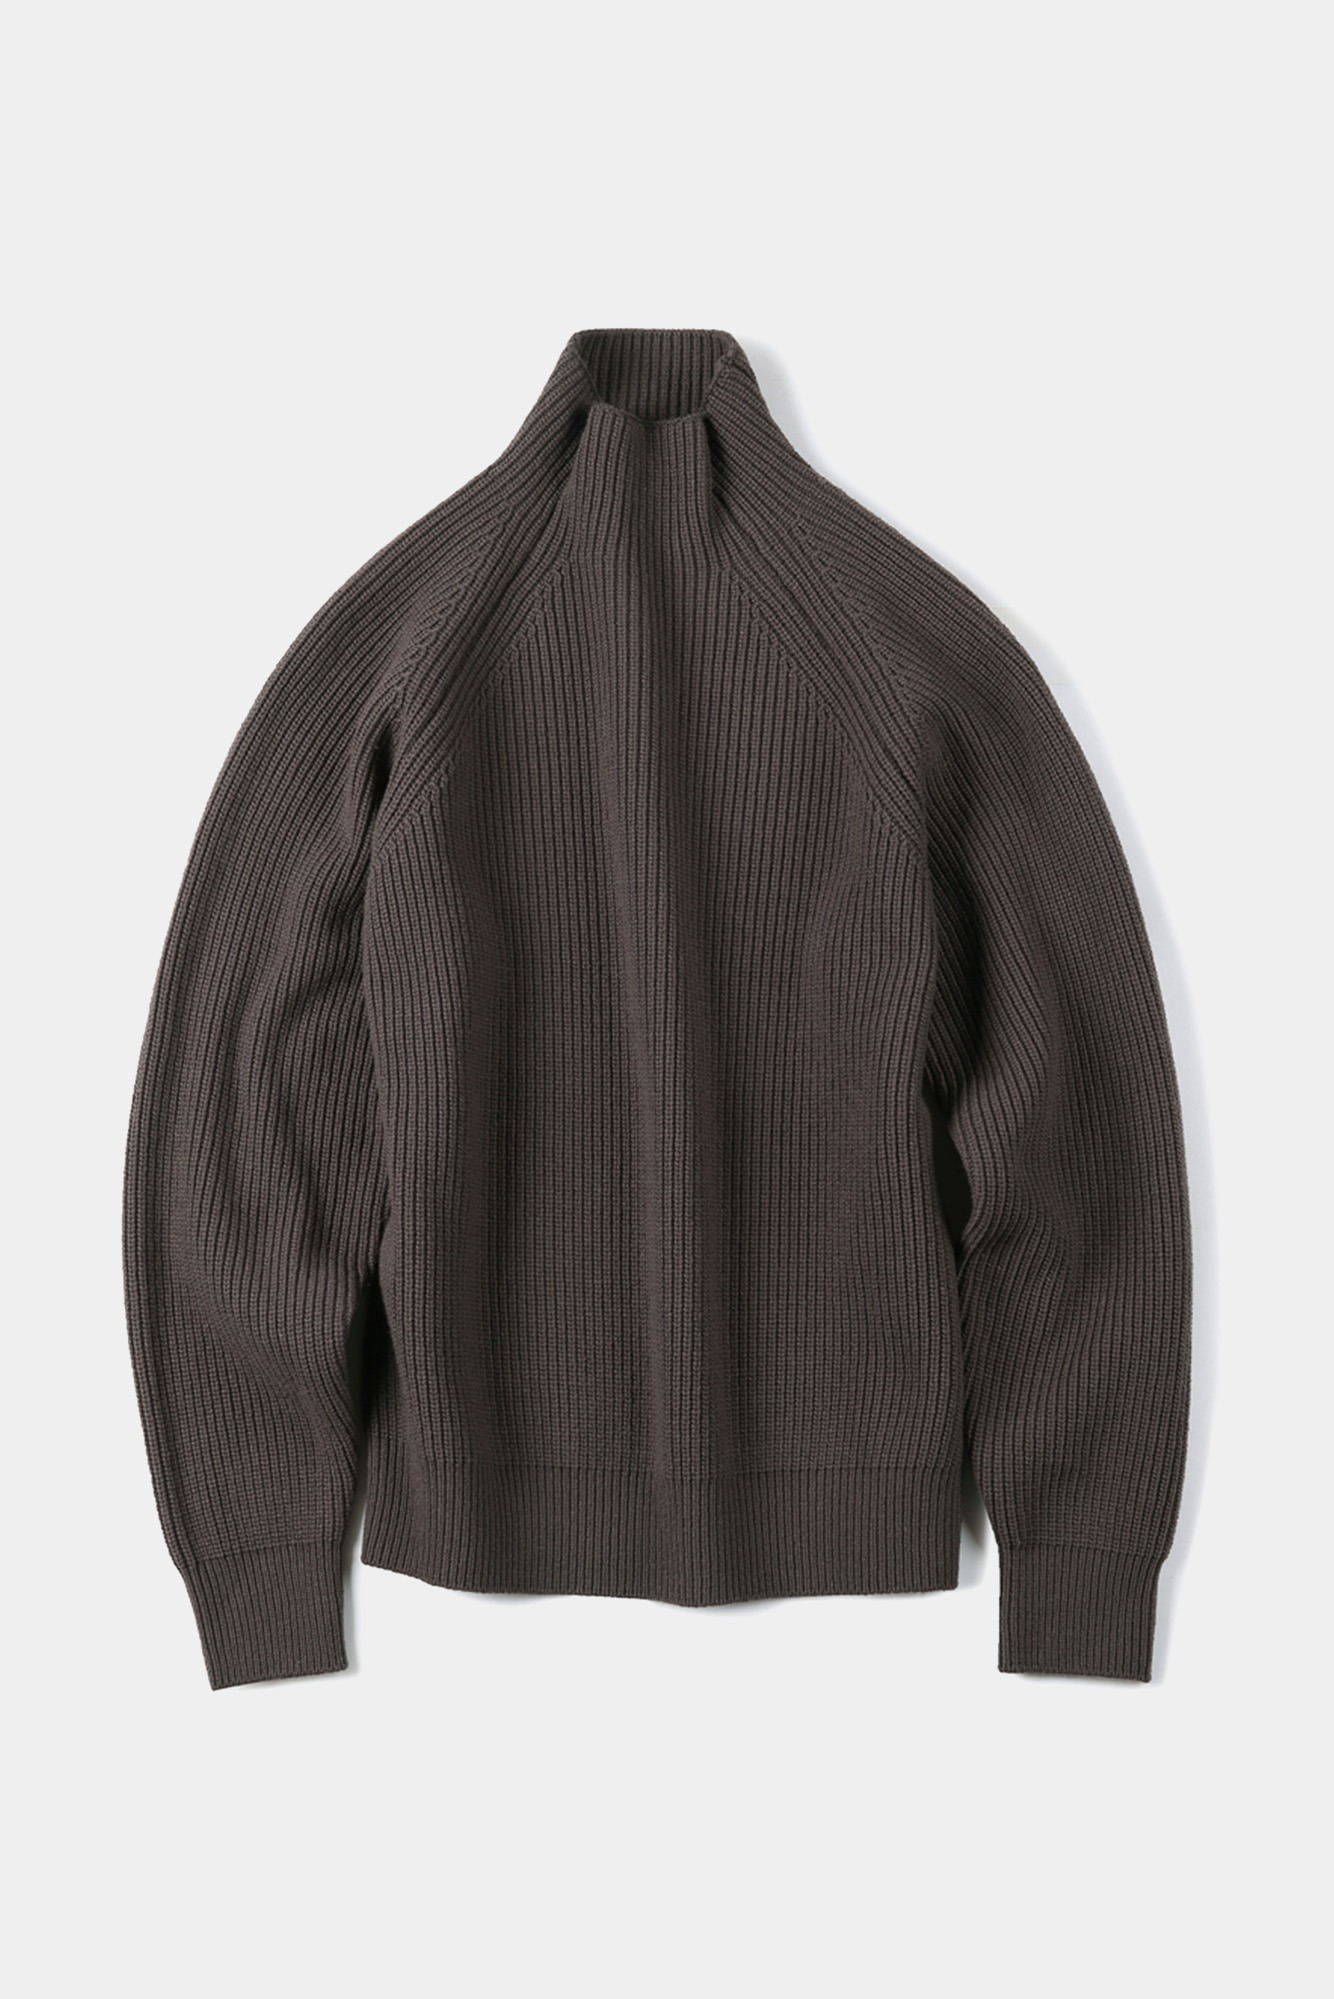 "SHIRTER Super Fine Lambs Wool High Neck Knit ""Mocha"""